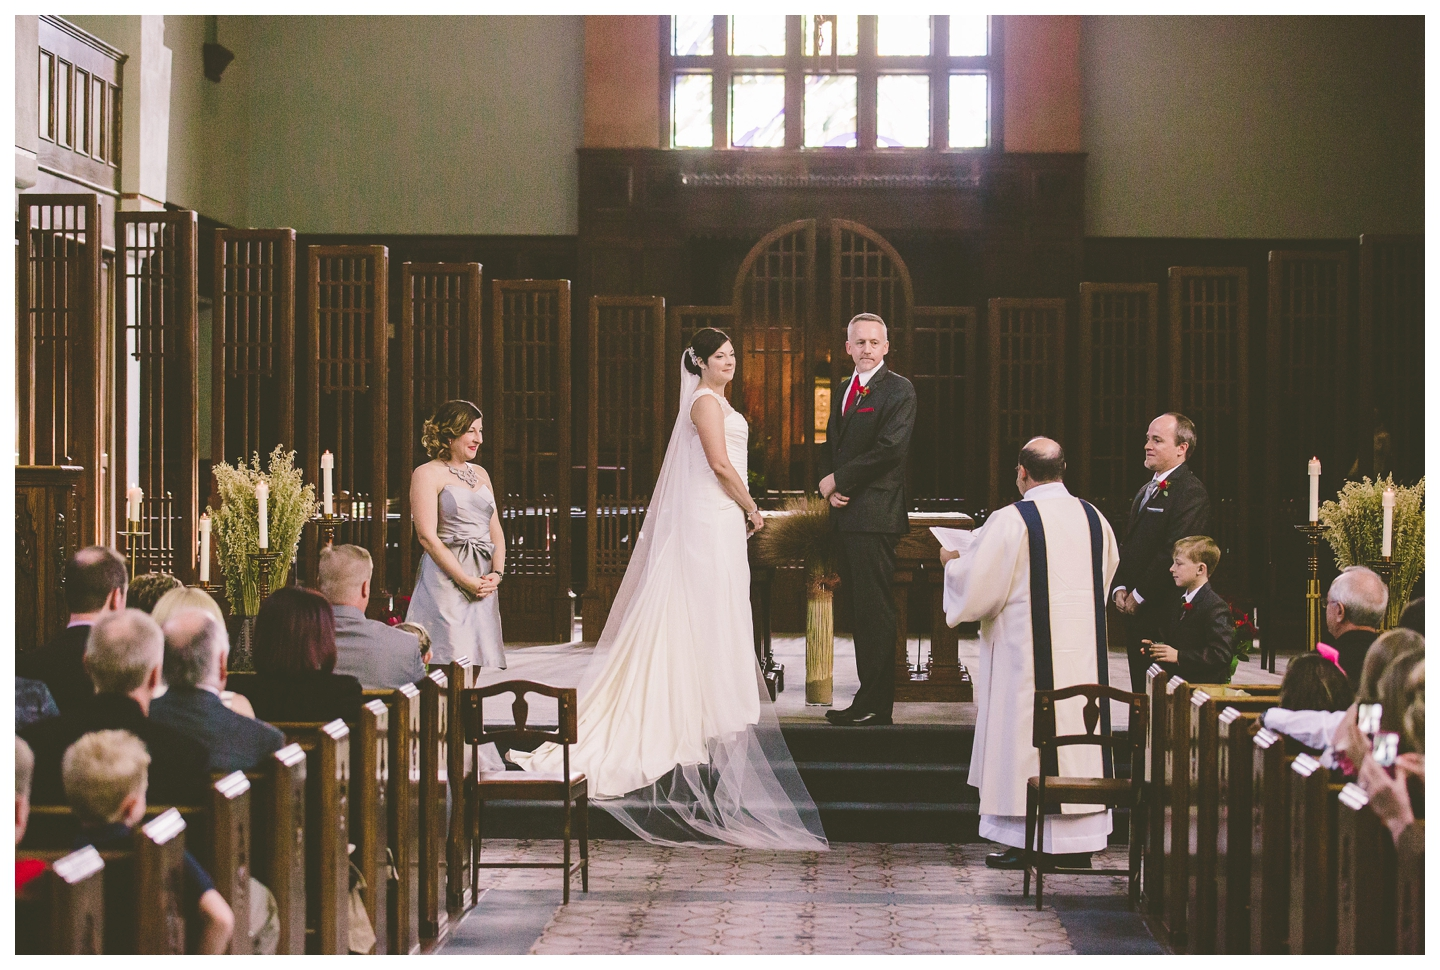 Vows during catholic wedding ceremony